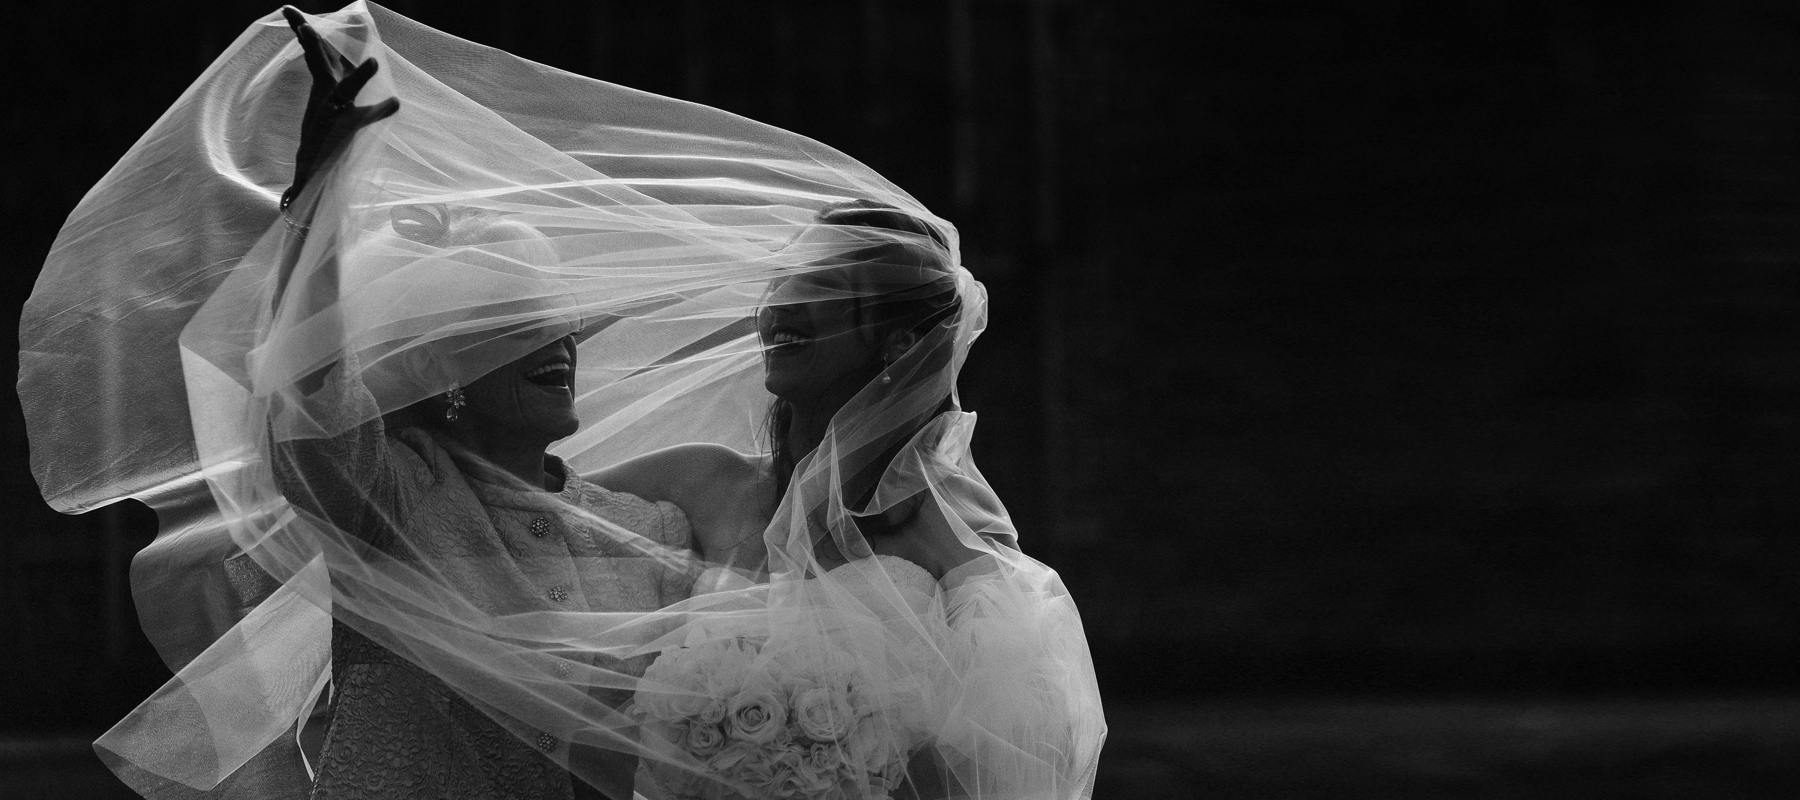 Natural and creative wedding photography. Documentary wedding photography in London, UK and overseas